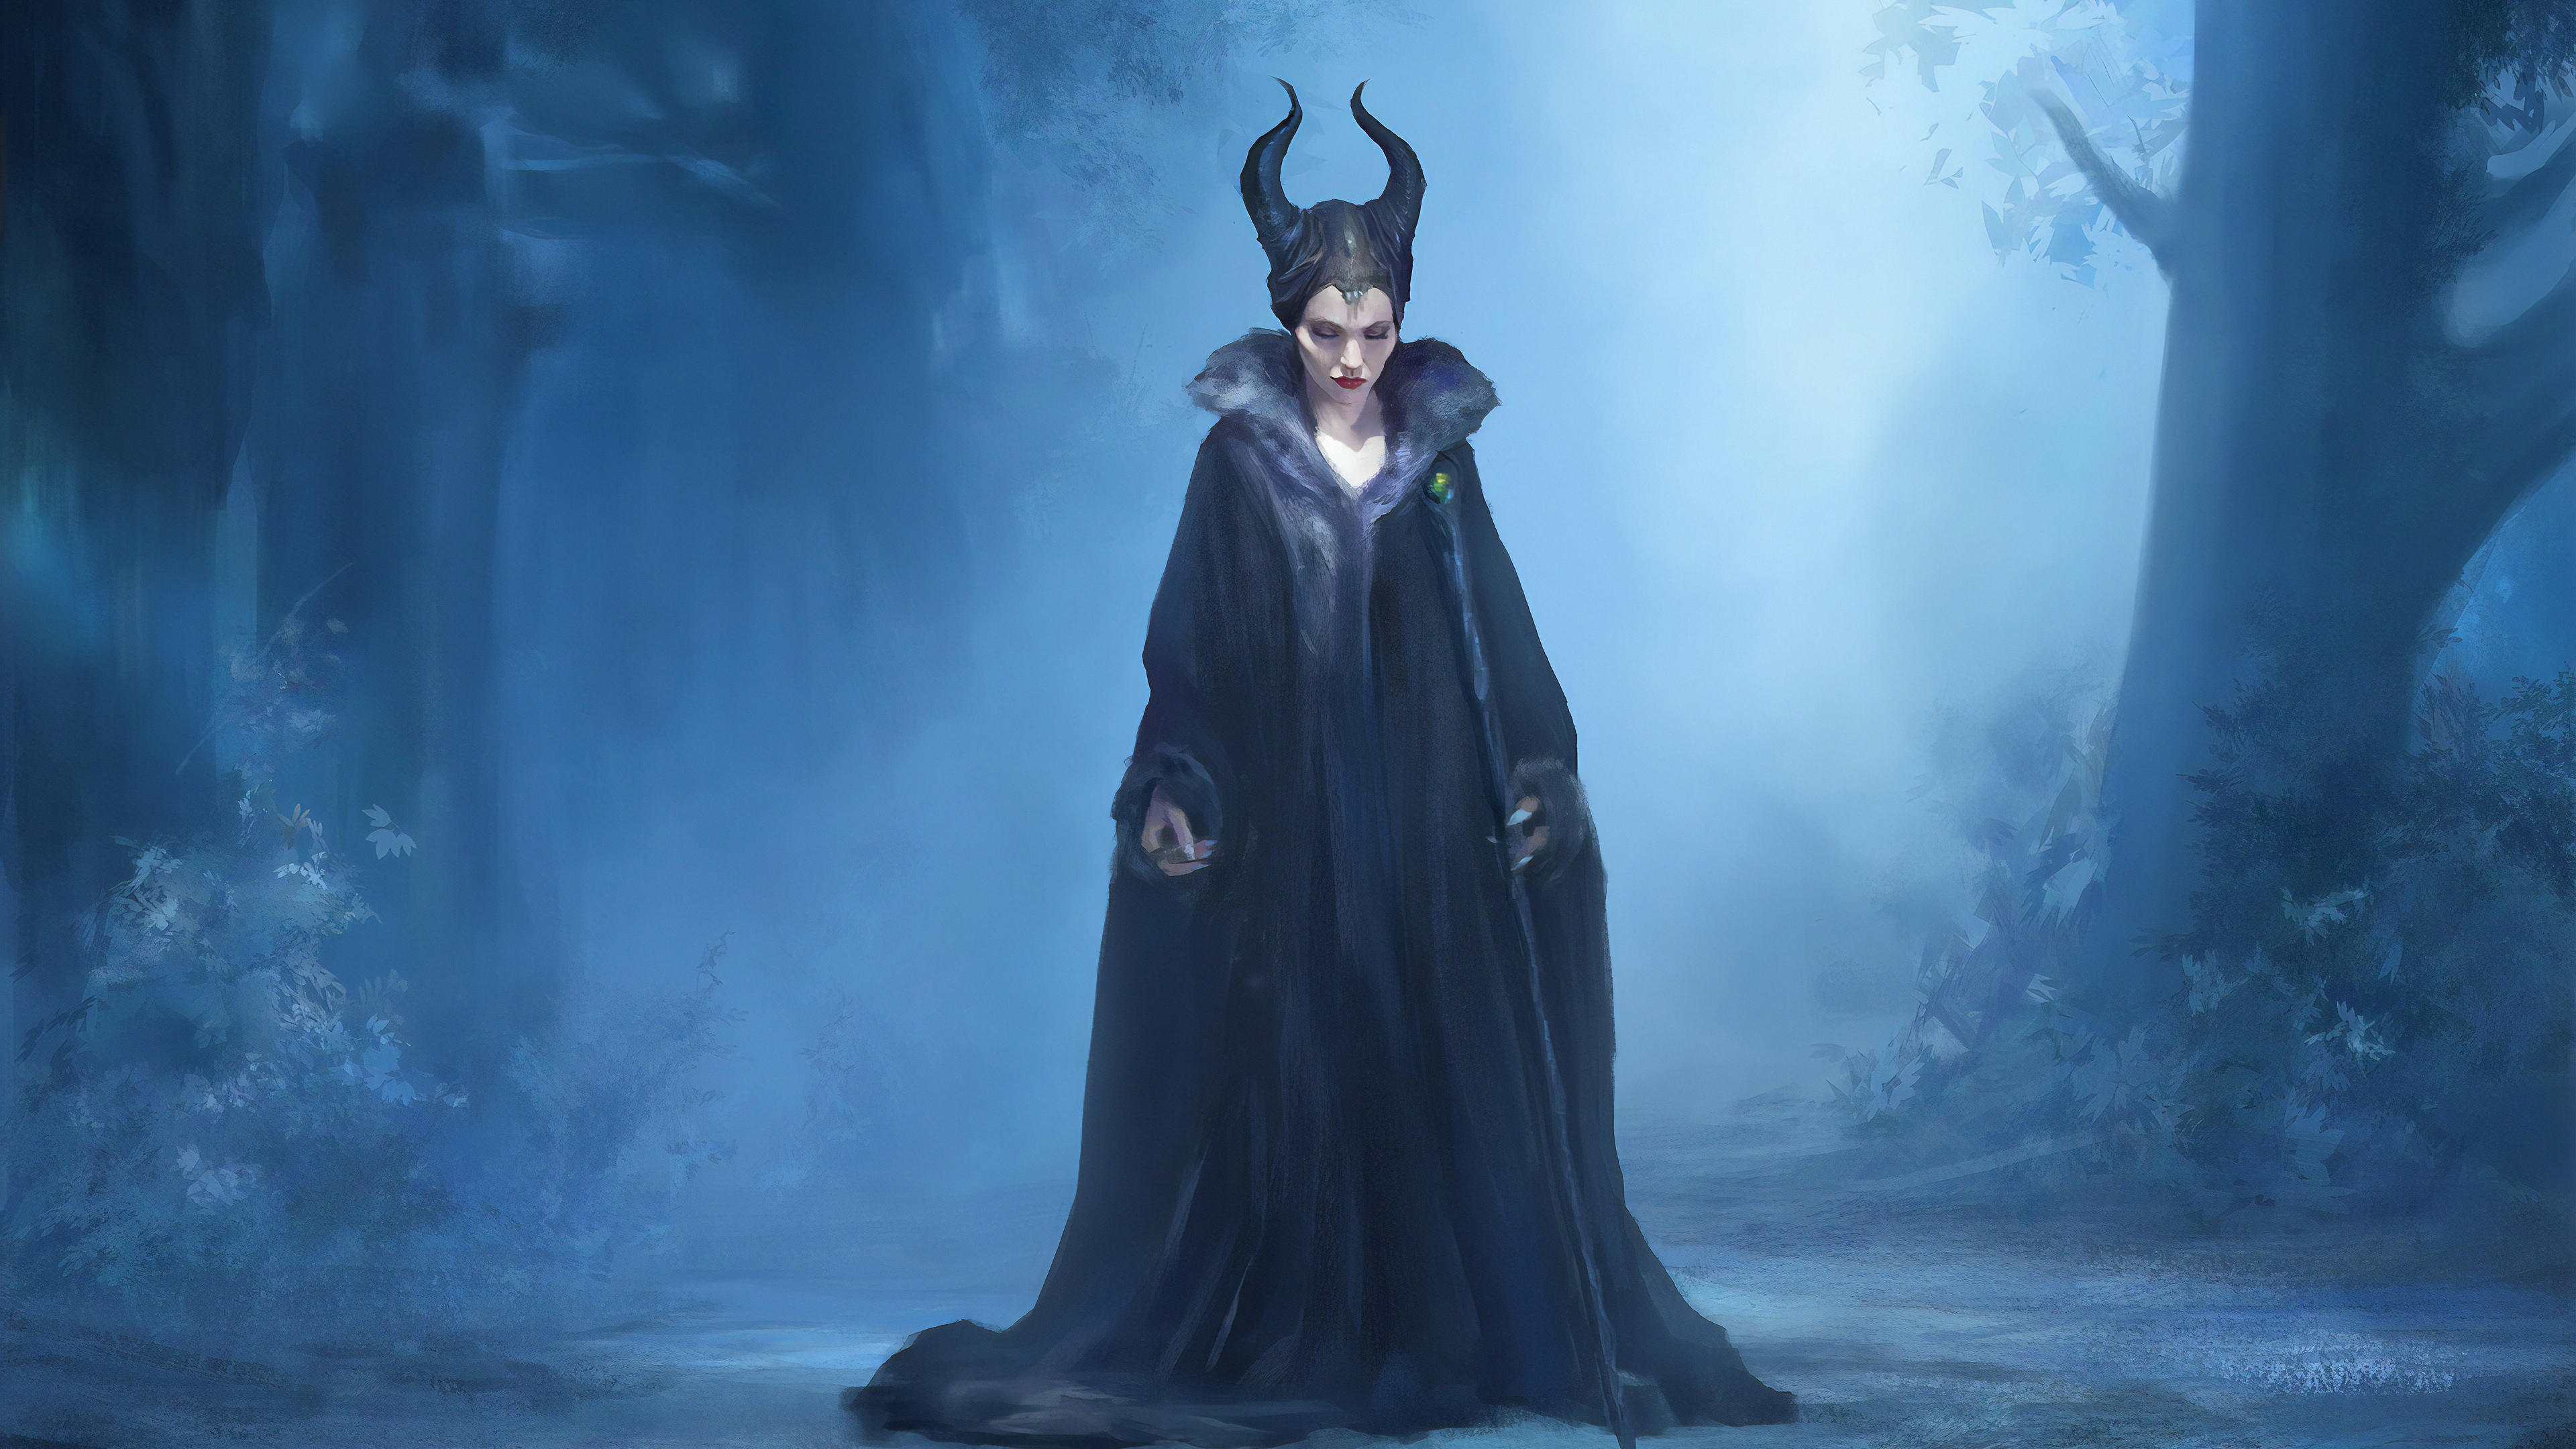 maleficent mistress of evil art 1572371021 - Maleficent Mistress Of Evil Art - movies wallpapers, maleficent wallpapers, maleficent mistress of evil wallpapers, hd-wallpapers, 4k-wallpapers, 2019 movies wallpapers